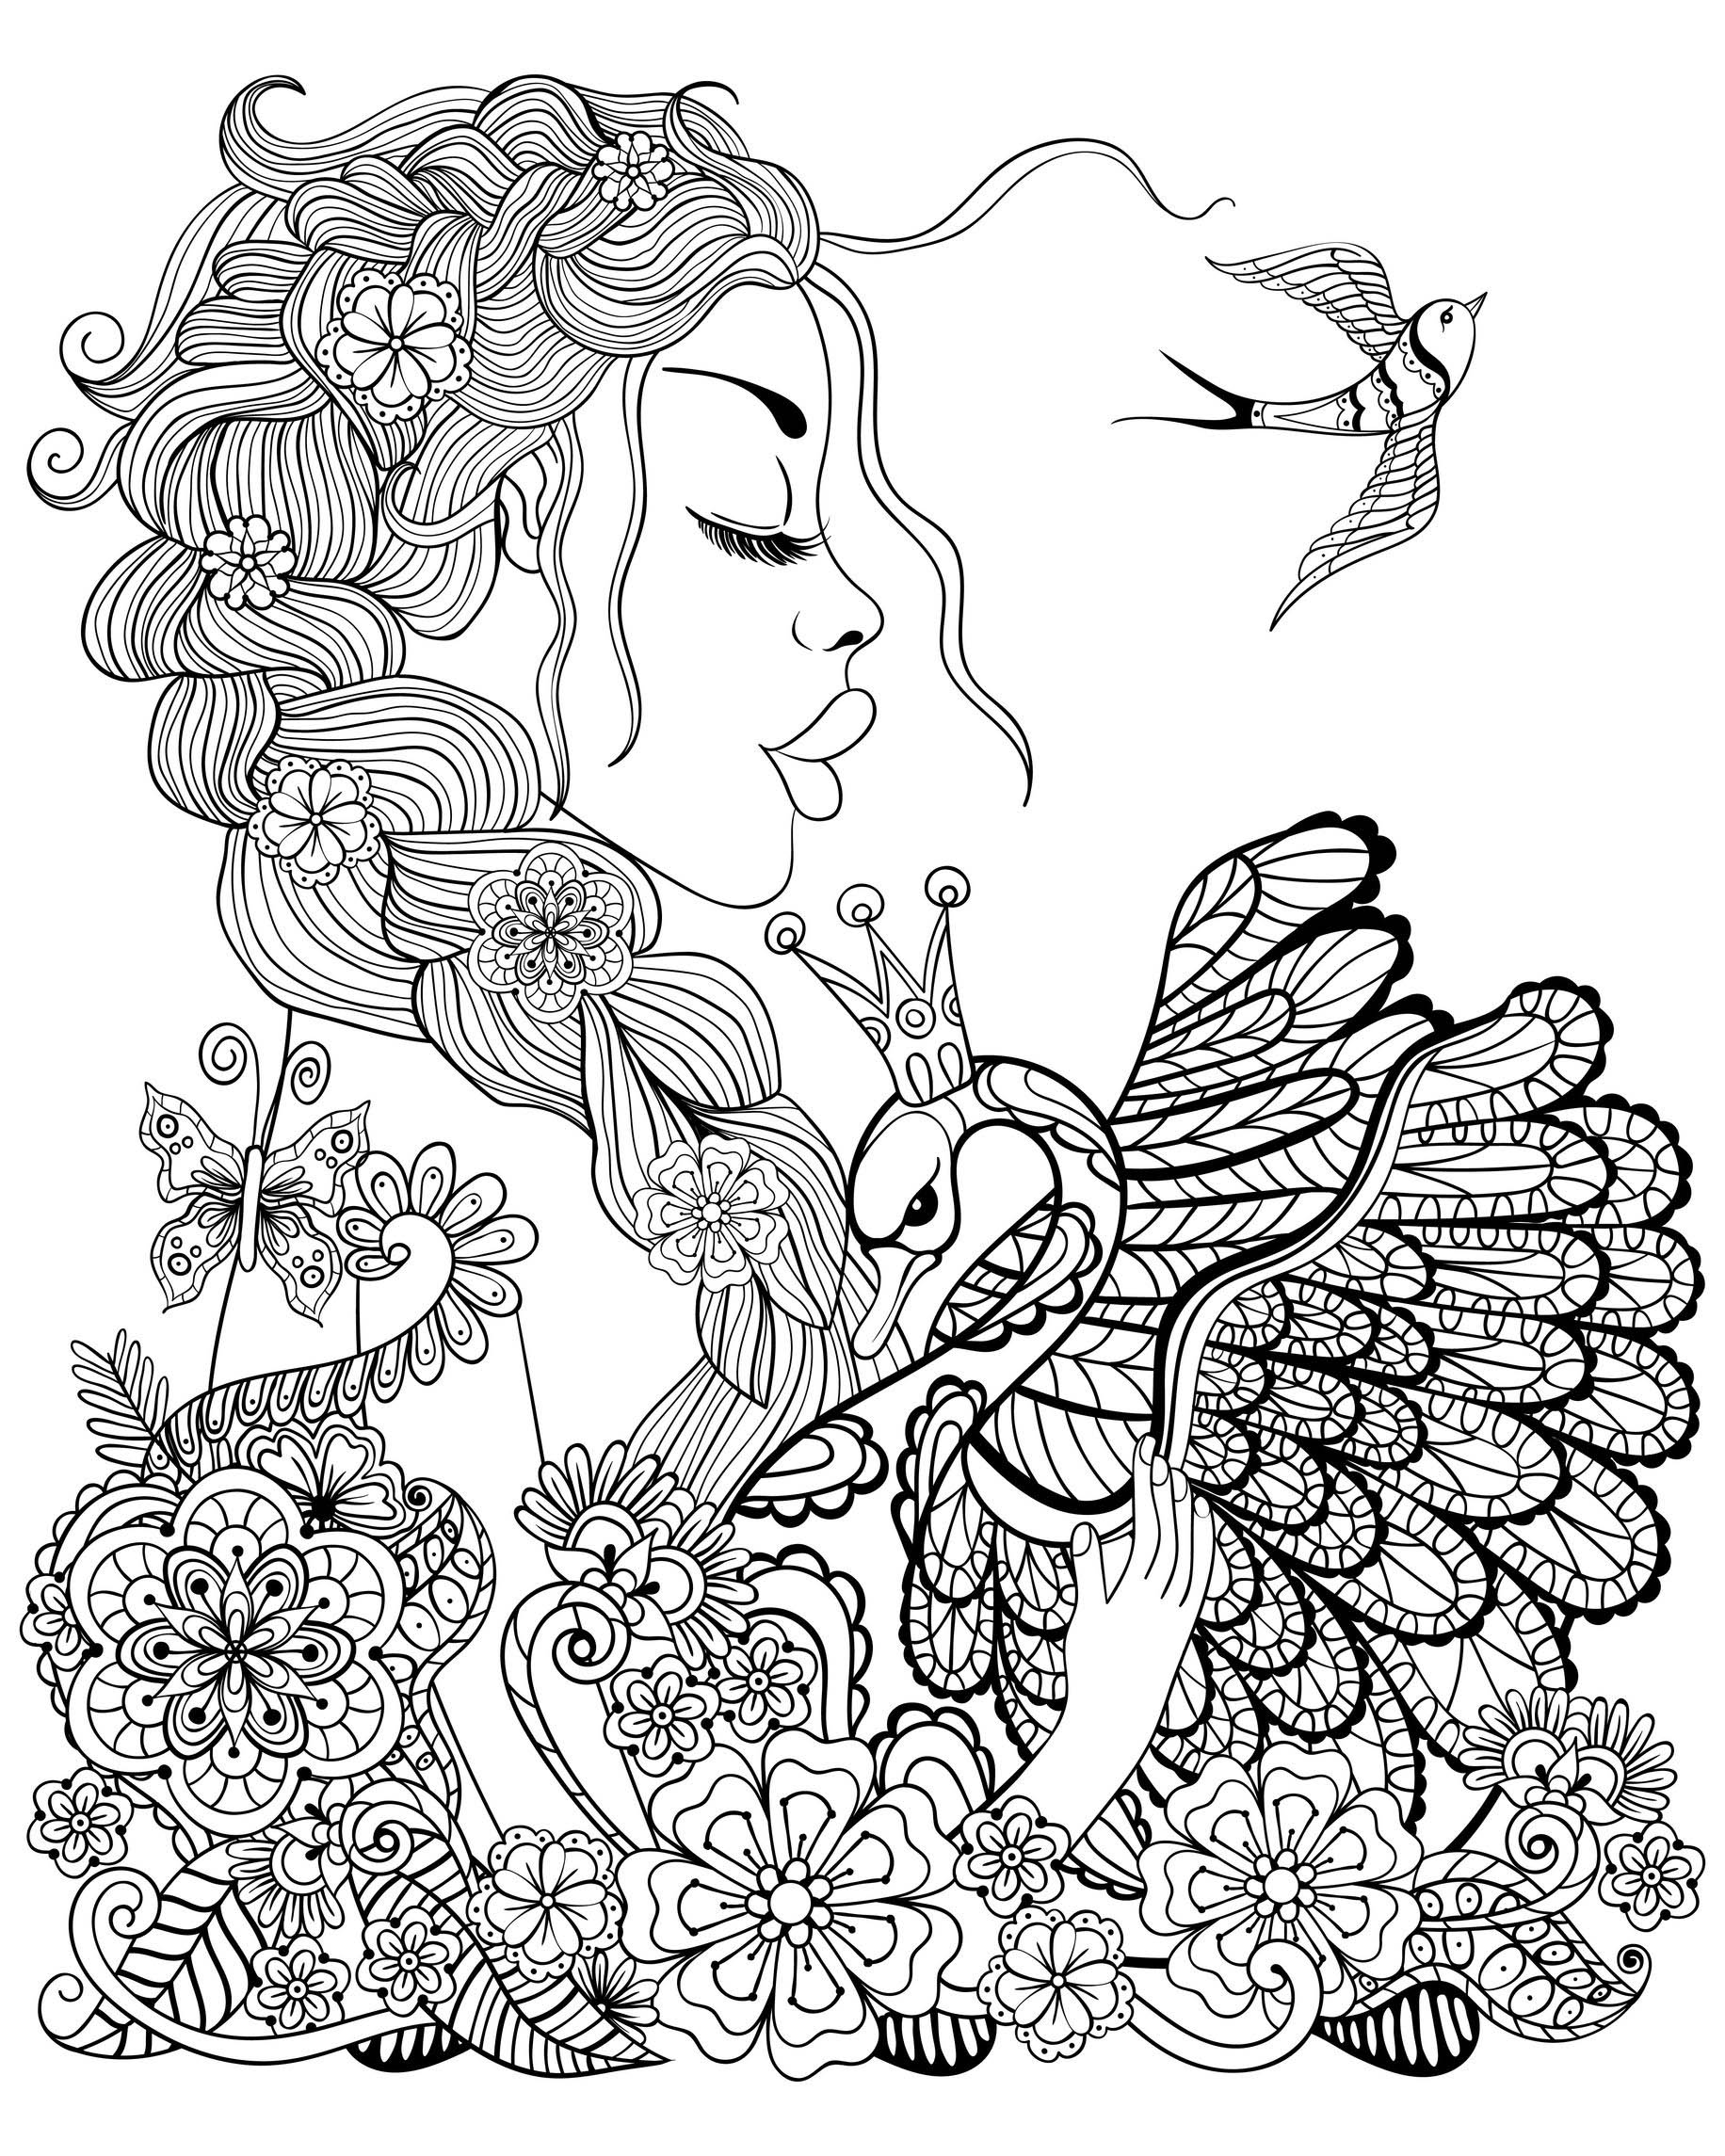 bird colouring pages for kids birds for kids birds kids coloring pages bird for kids pages colouring